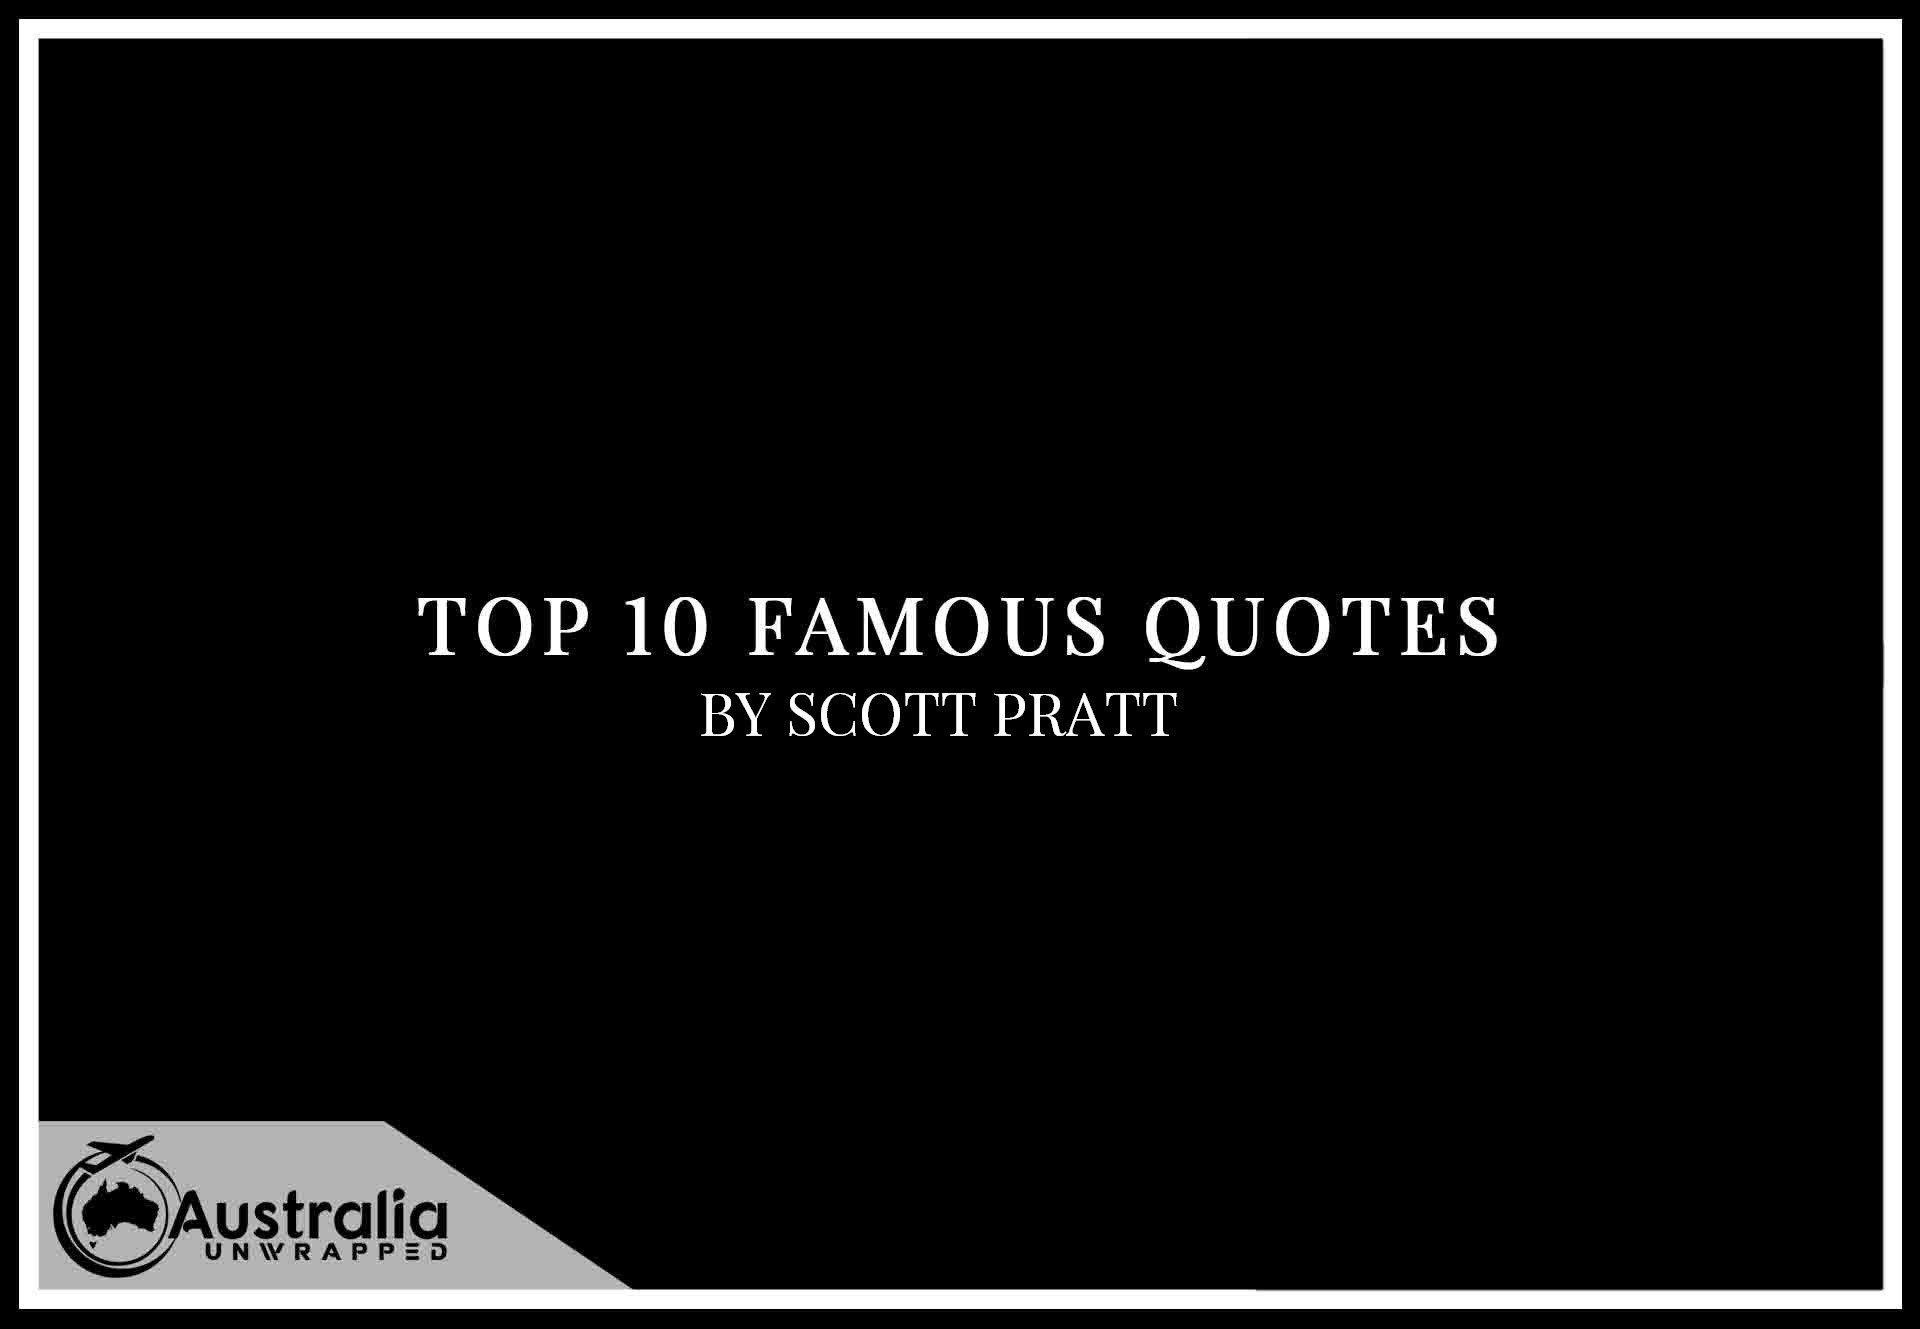 Scott Pratt's Top 10 Popular and Famous Quotes here are my Ten of My Favourite Scott Pratt Quotes well worth a look! Australia Unwrapped